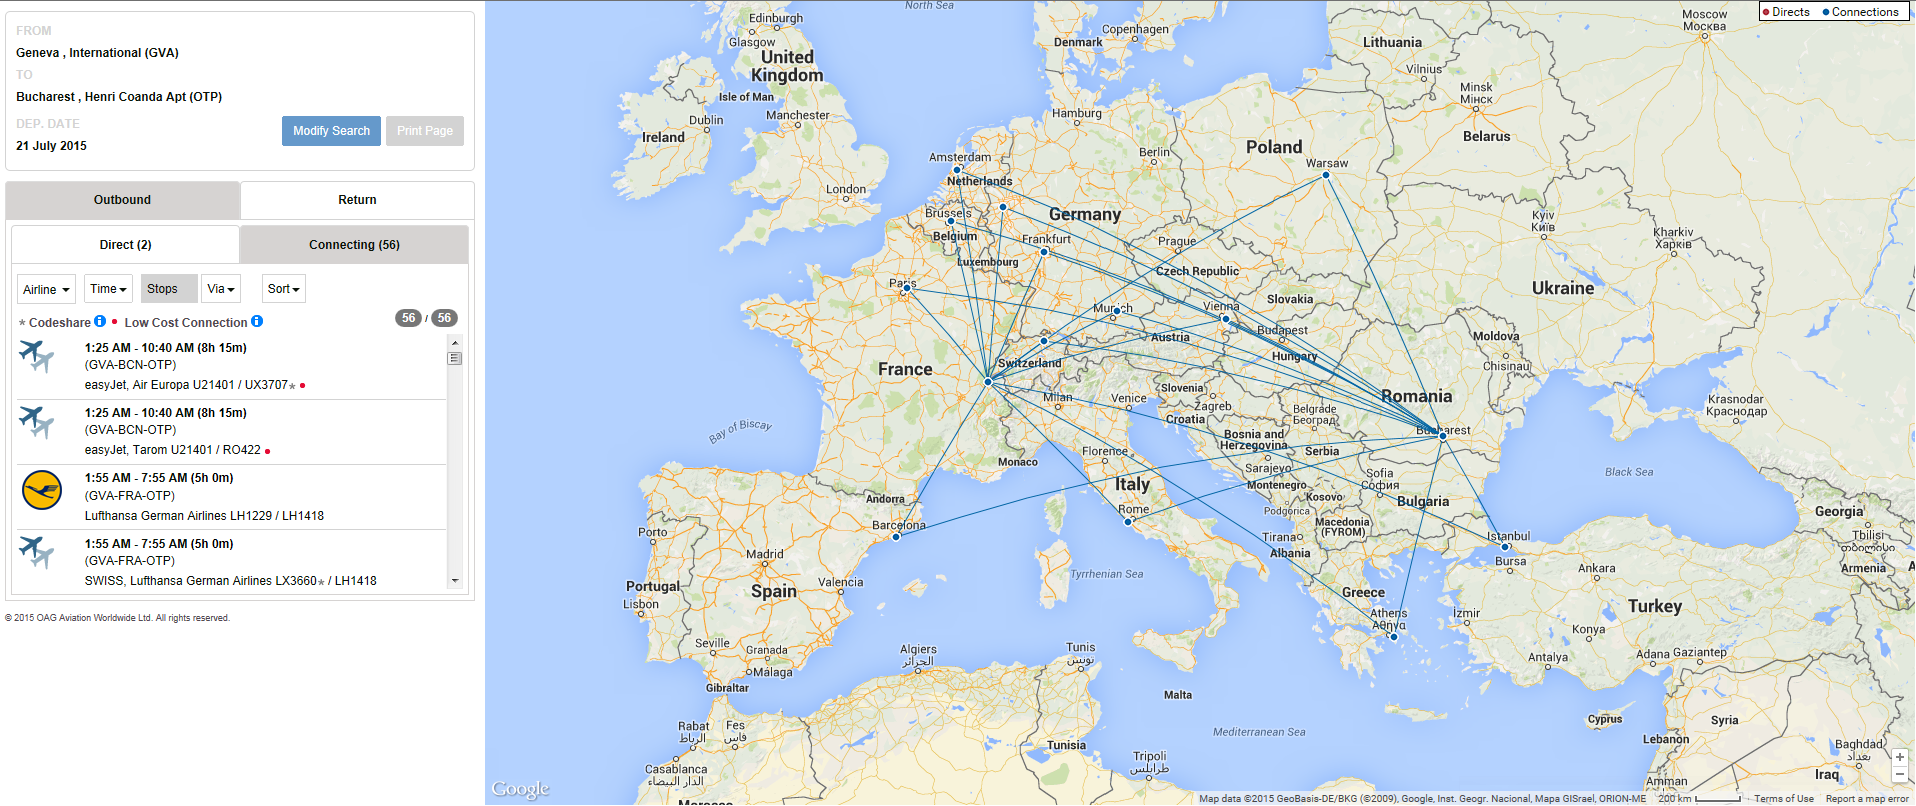 A configurable airport route map to promote your connectivity